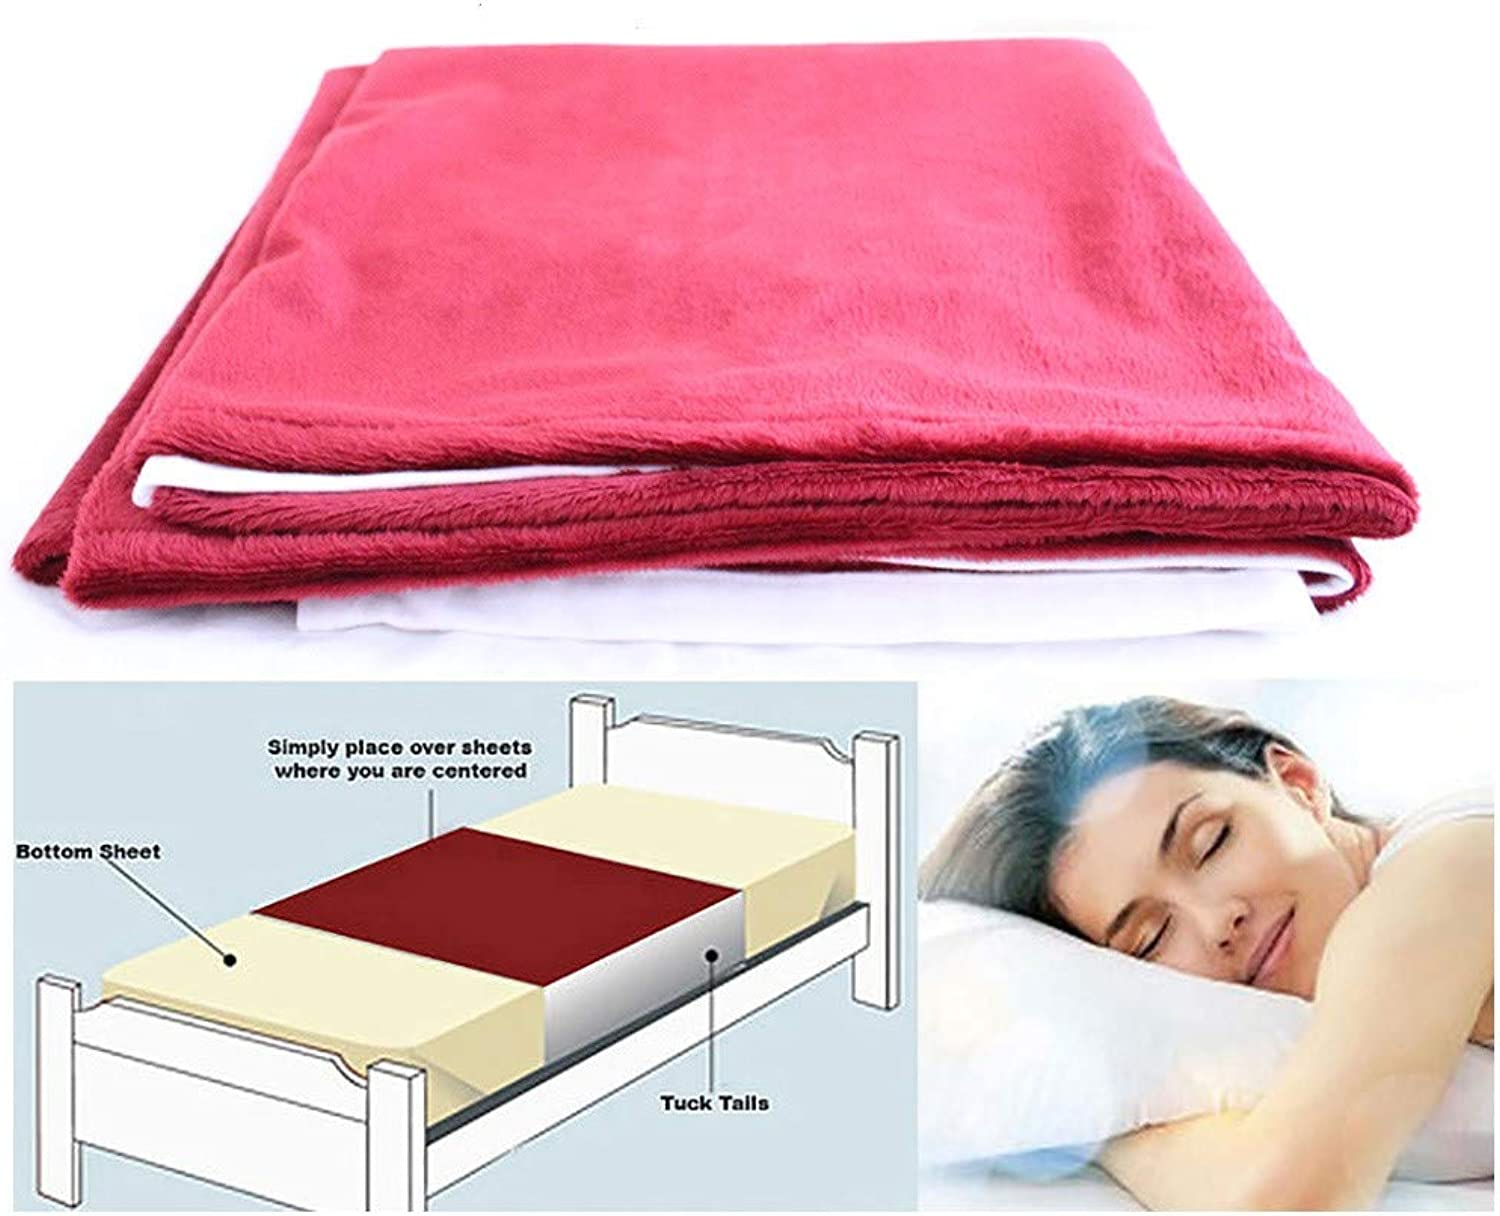 Cycleliners Period Bed Sheets Predector - Waterproof, Leakproof and Reusable Menstrual Bed Pad (King Burgundy)